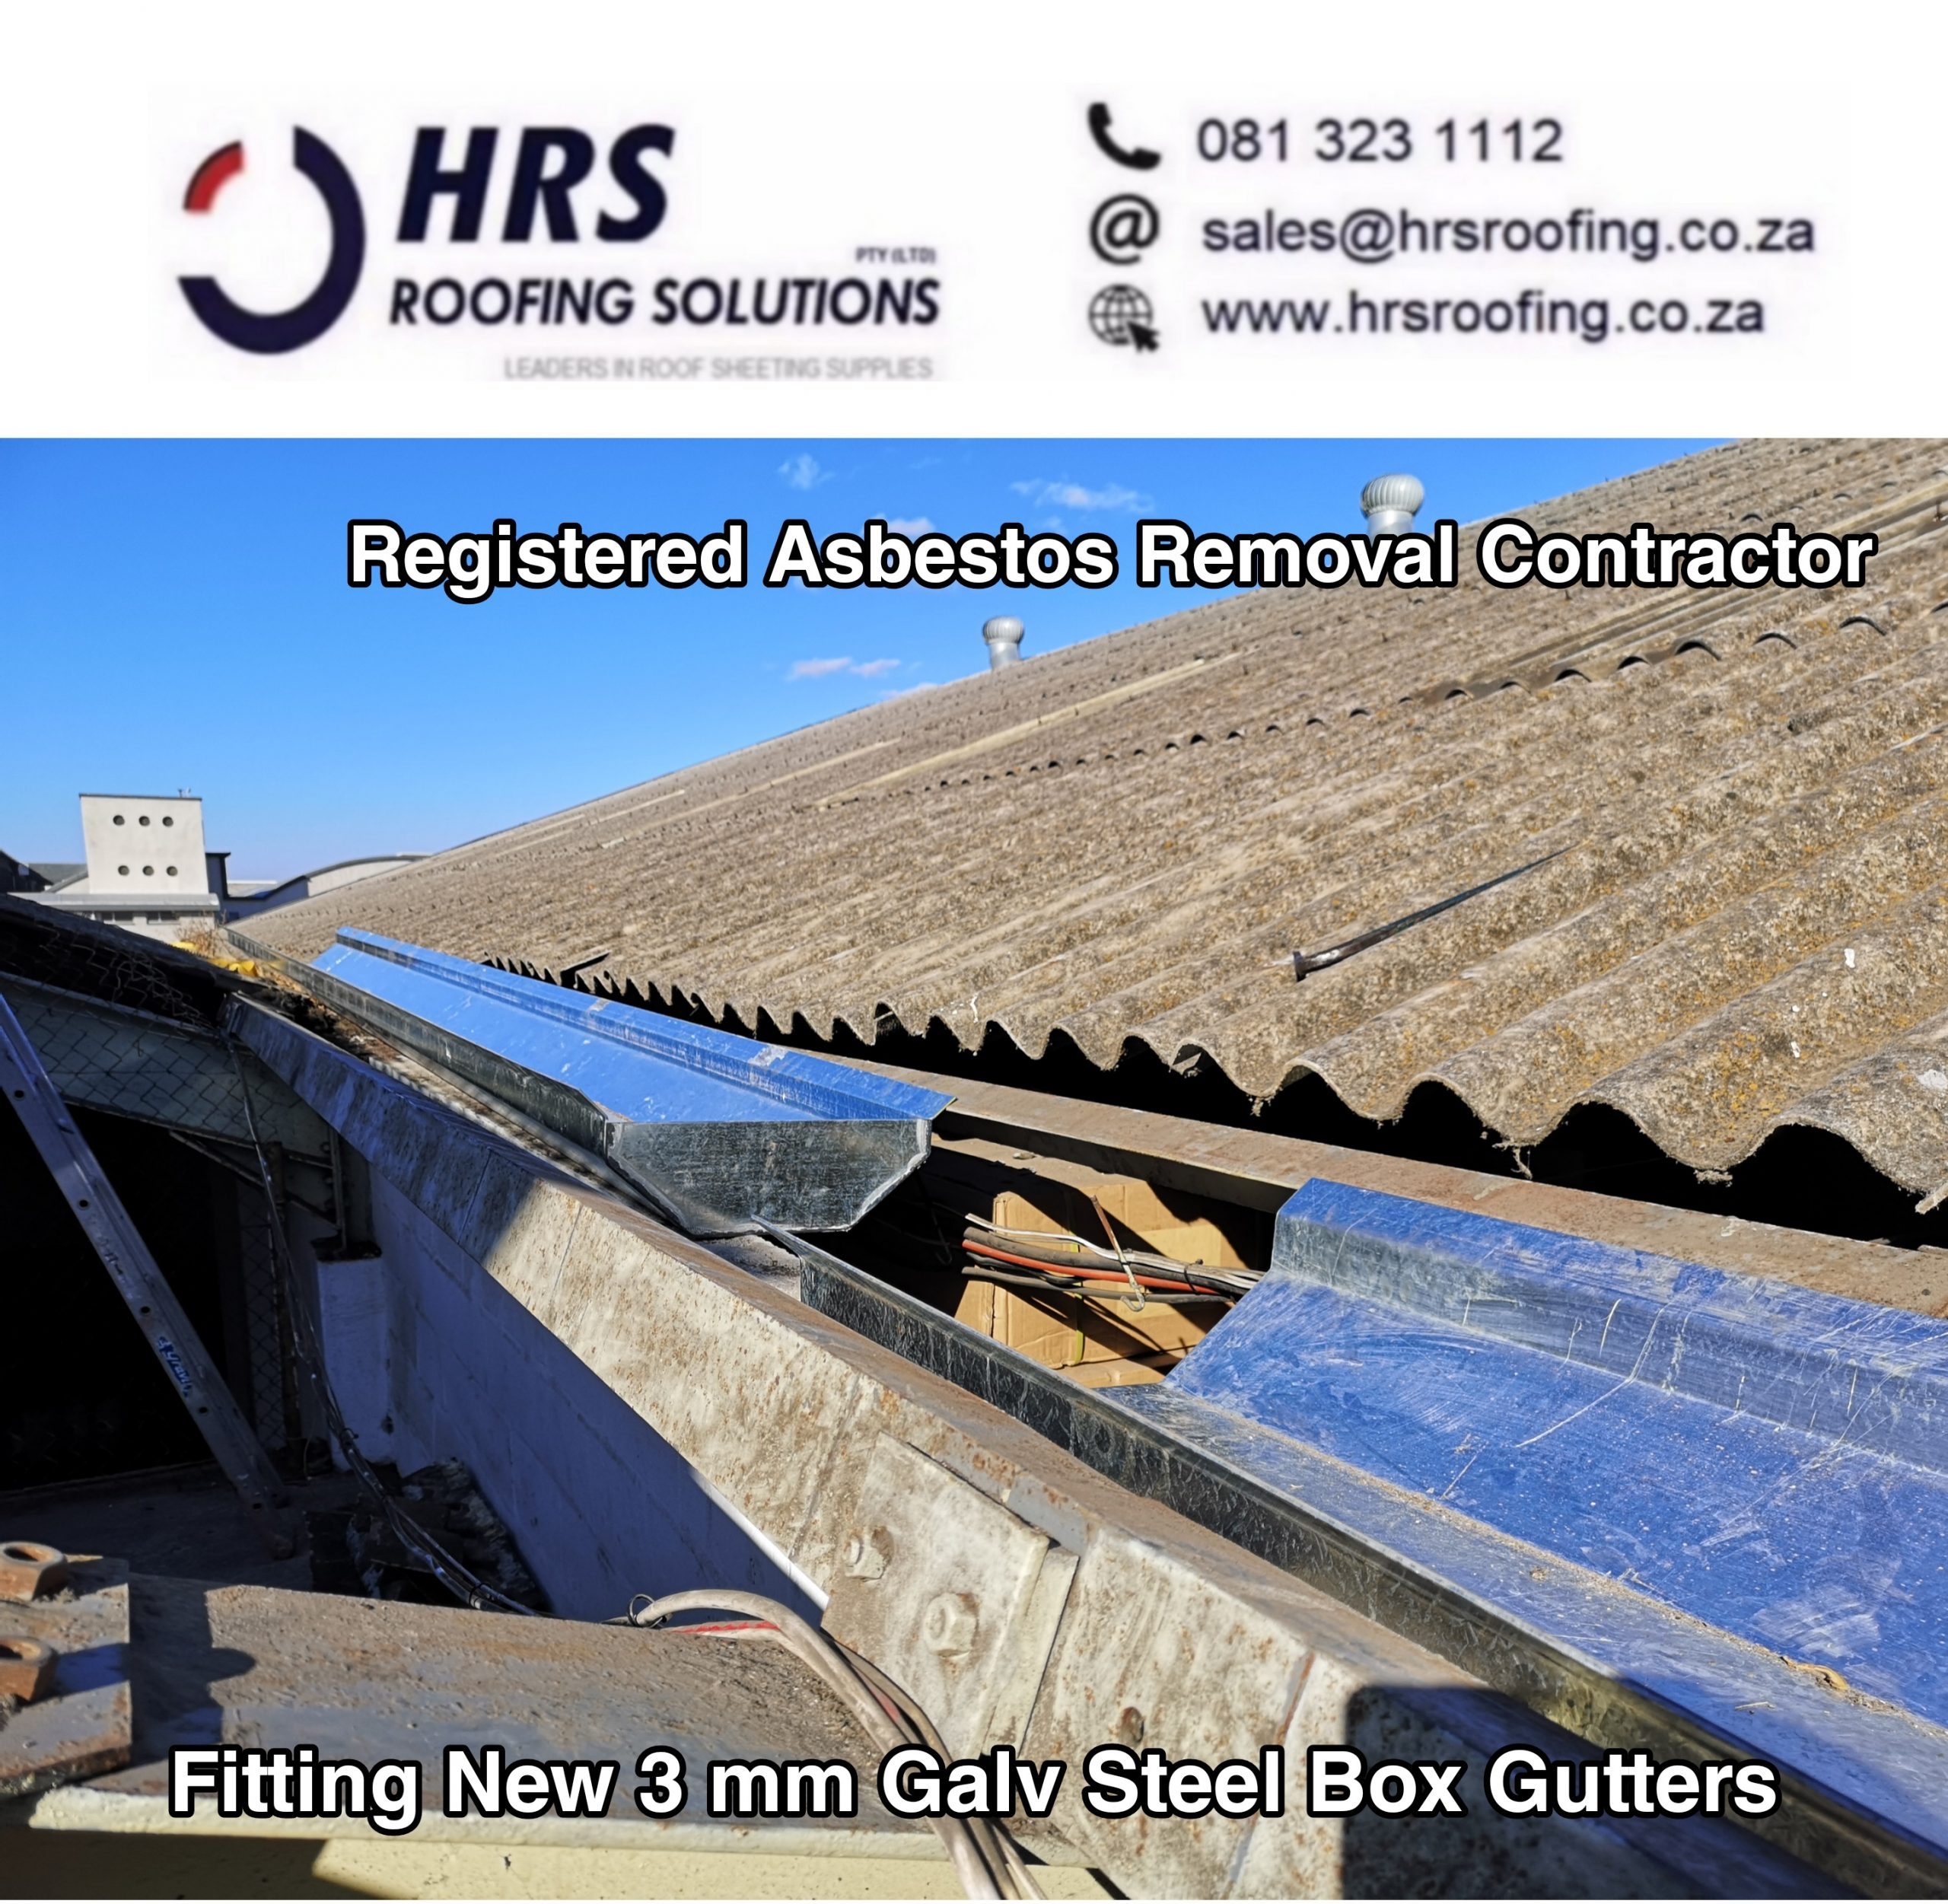 hrs roofing solutions Asbestos roof removals roofing contractor galv steel gutter scaled - Roofing Gallery